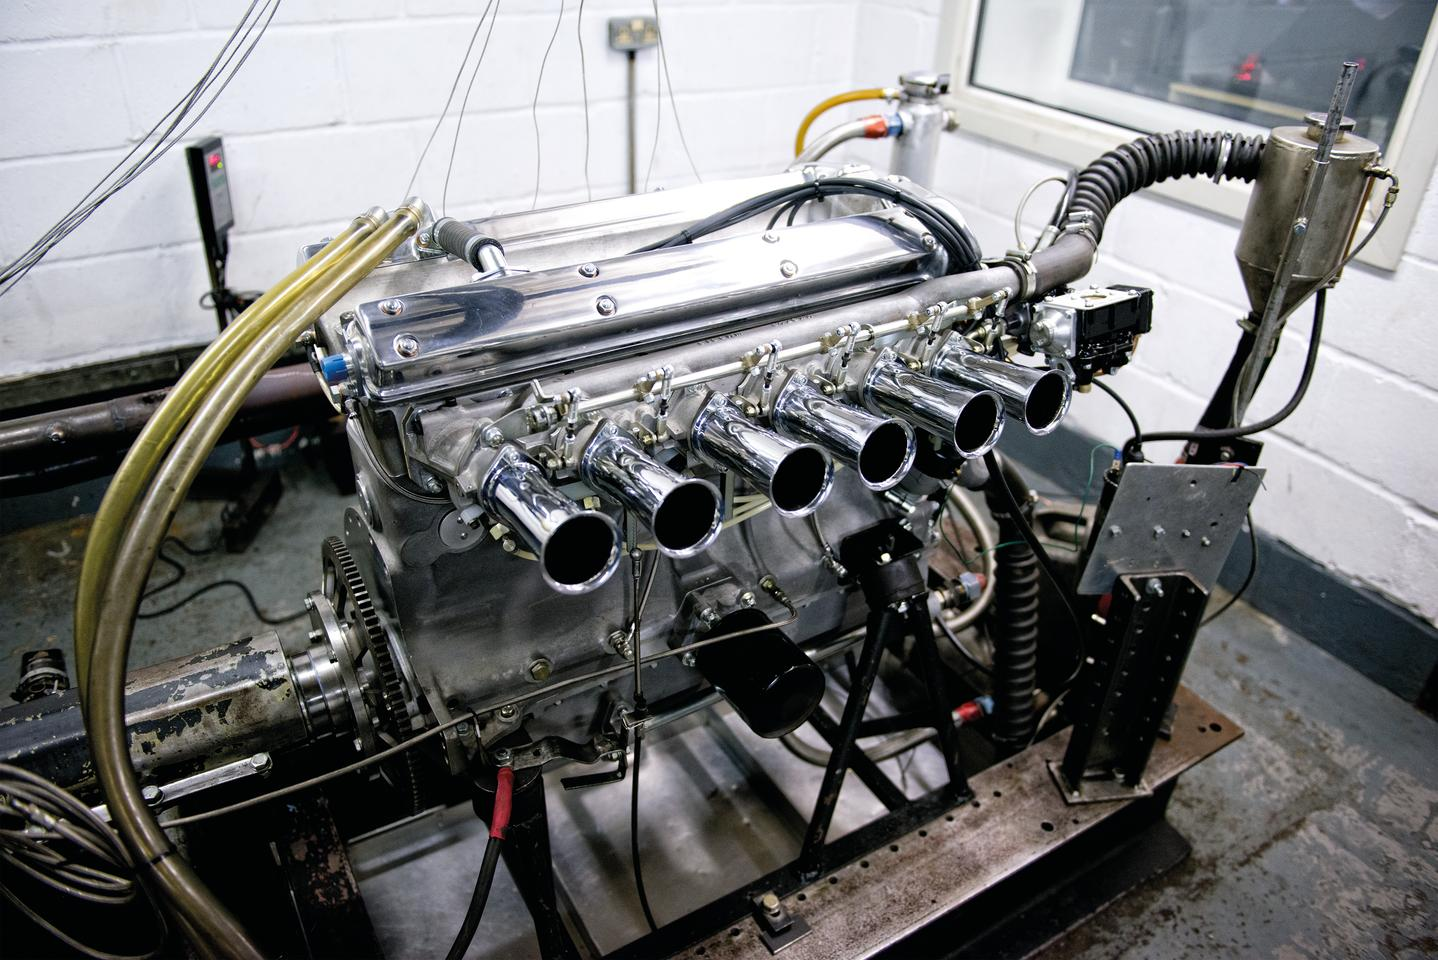 The Lightweight E-Type uses the classic XK engine